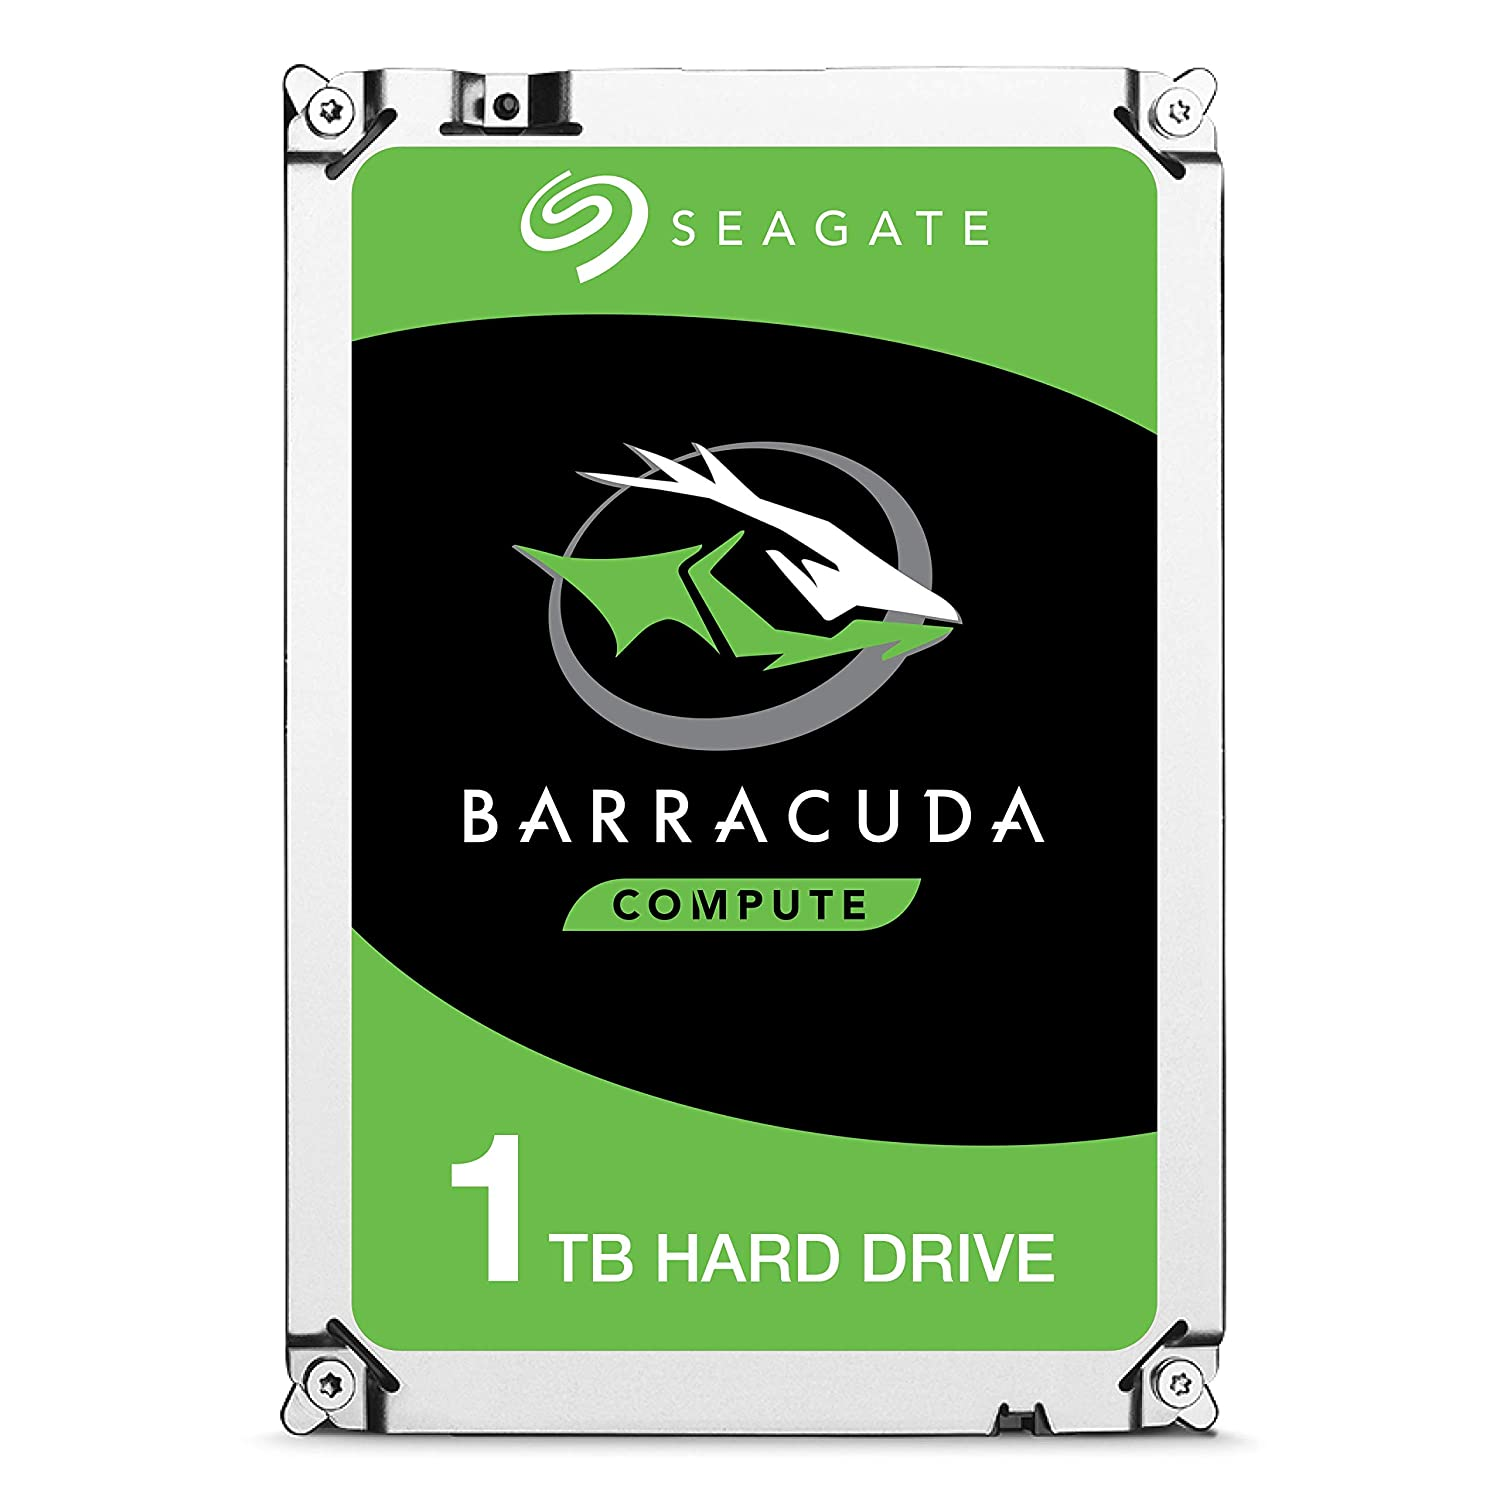 Frustration Free Packaging ST6000DMZ03 Seagate BarraCuda 6TB Internal Hard Drive HDD 3.5 Inch SATA 6 Gb//s 5400 RPM 256MB Cache for Computer Desktop PC